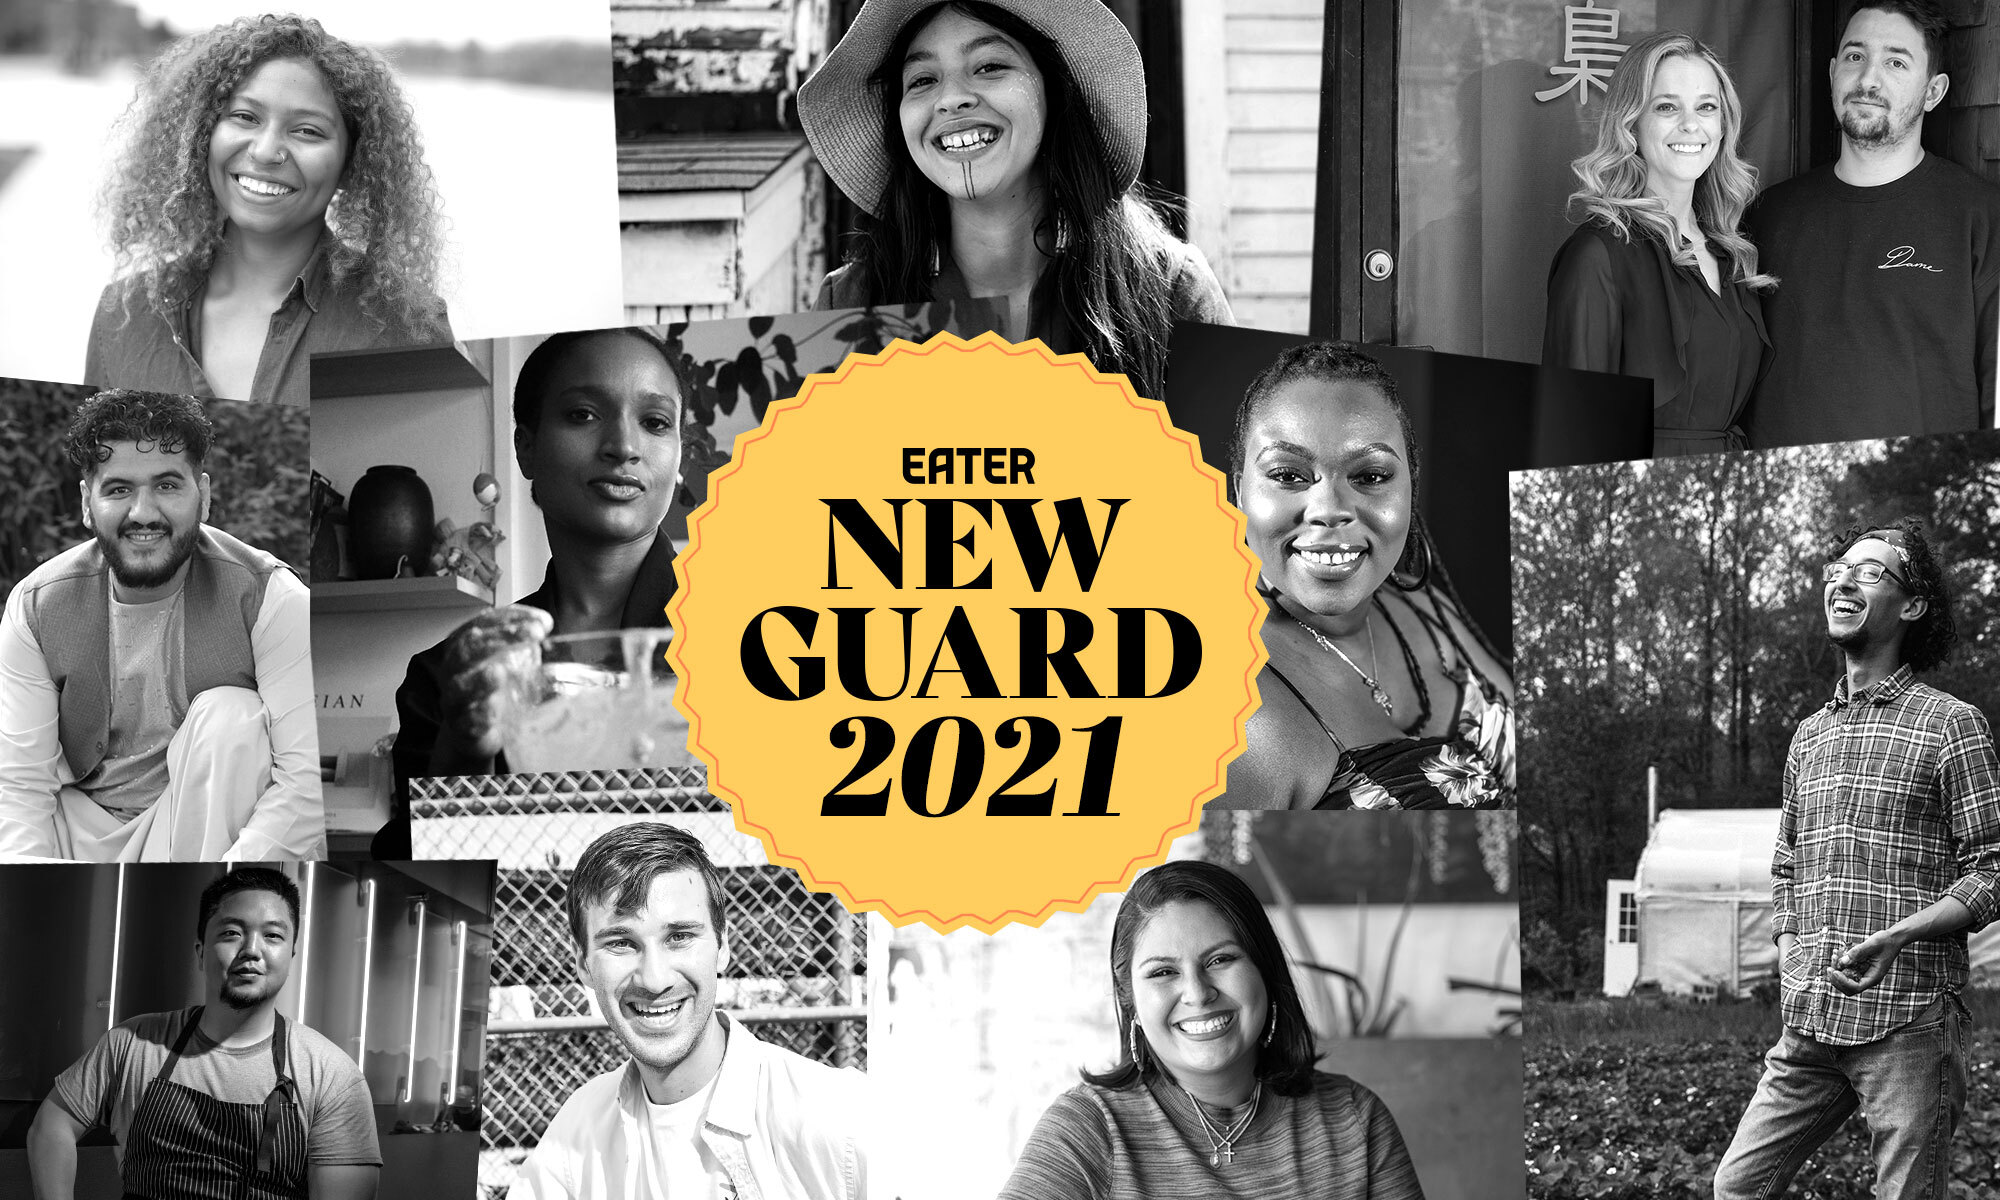 Eater New Guard 2021 badge atop photos of diverse group of adults